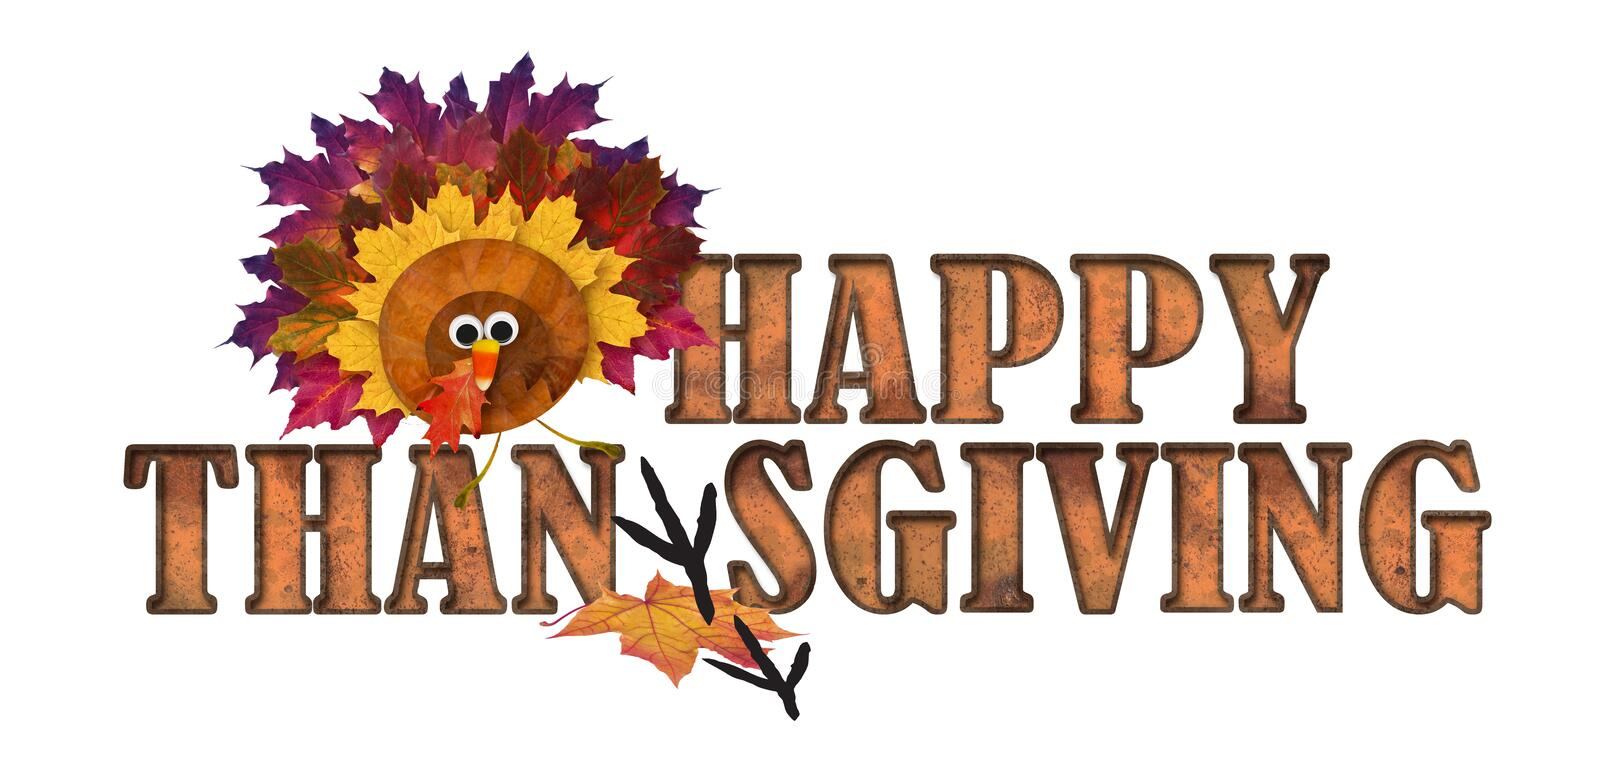 Happy Thanksgiving Art Logo with Autumn Leaves and Turkey Candy Corn Nose royalty free illustration